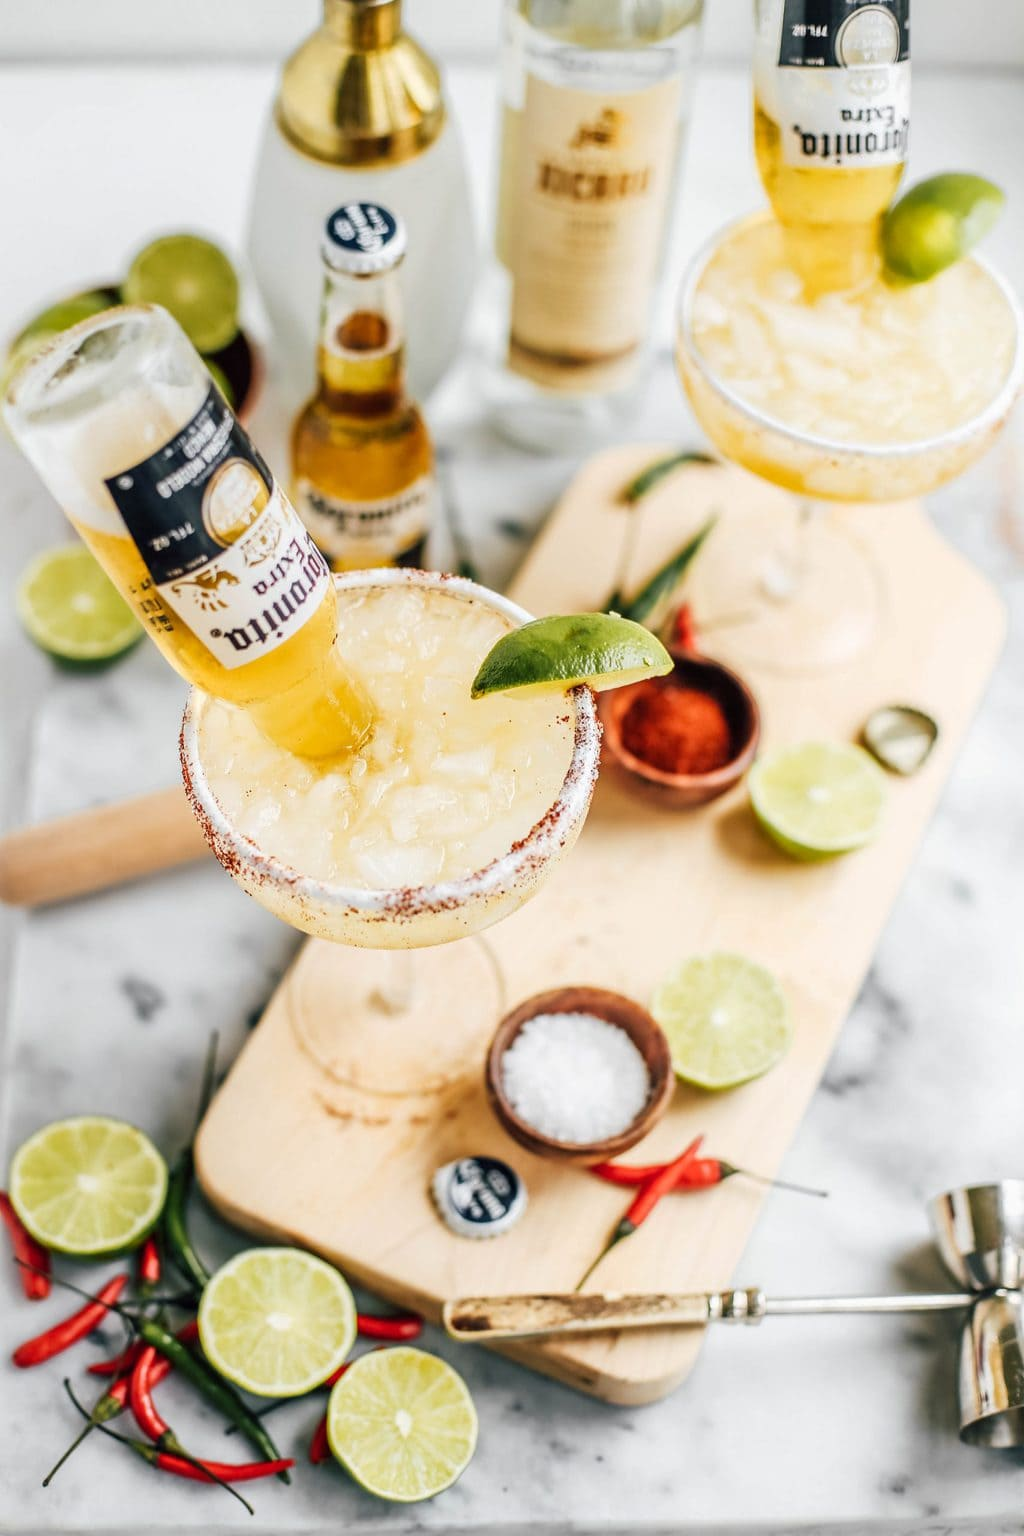 Small corona bottles being poured into a margarita glass.